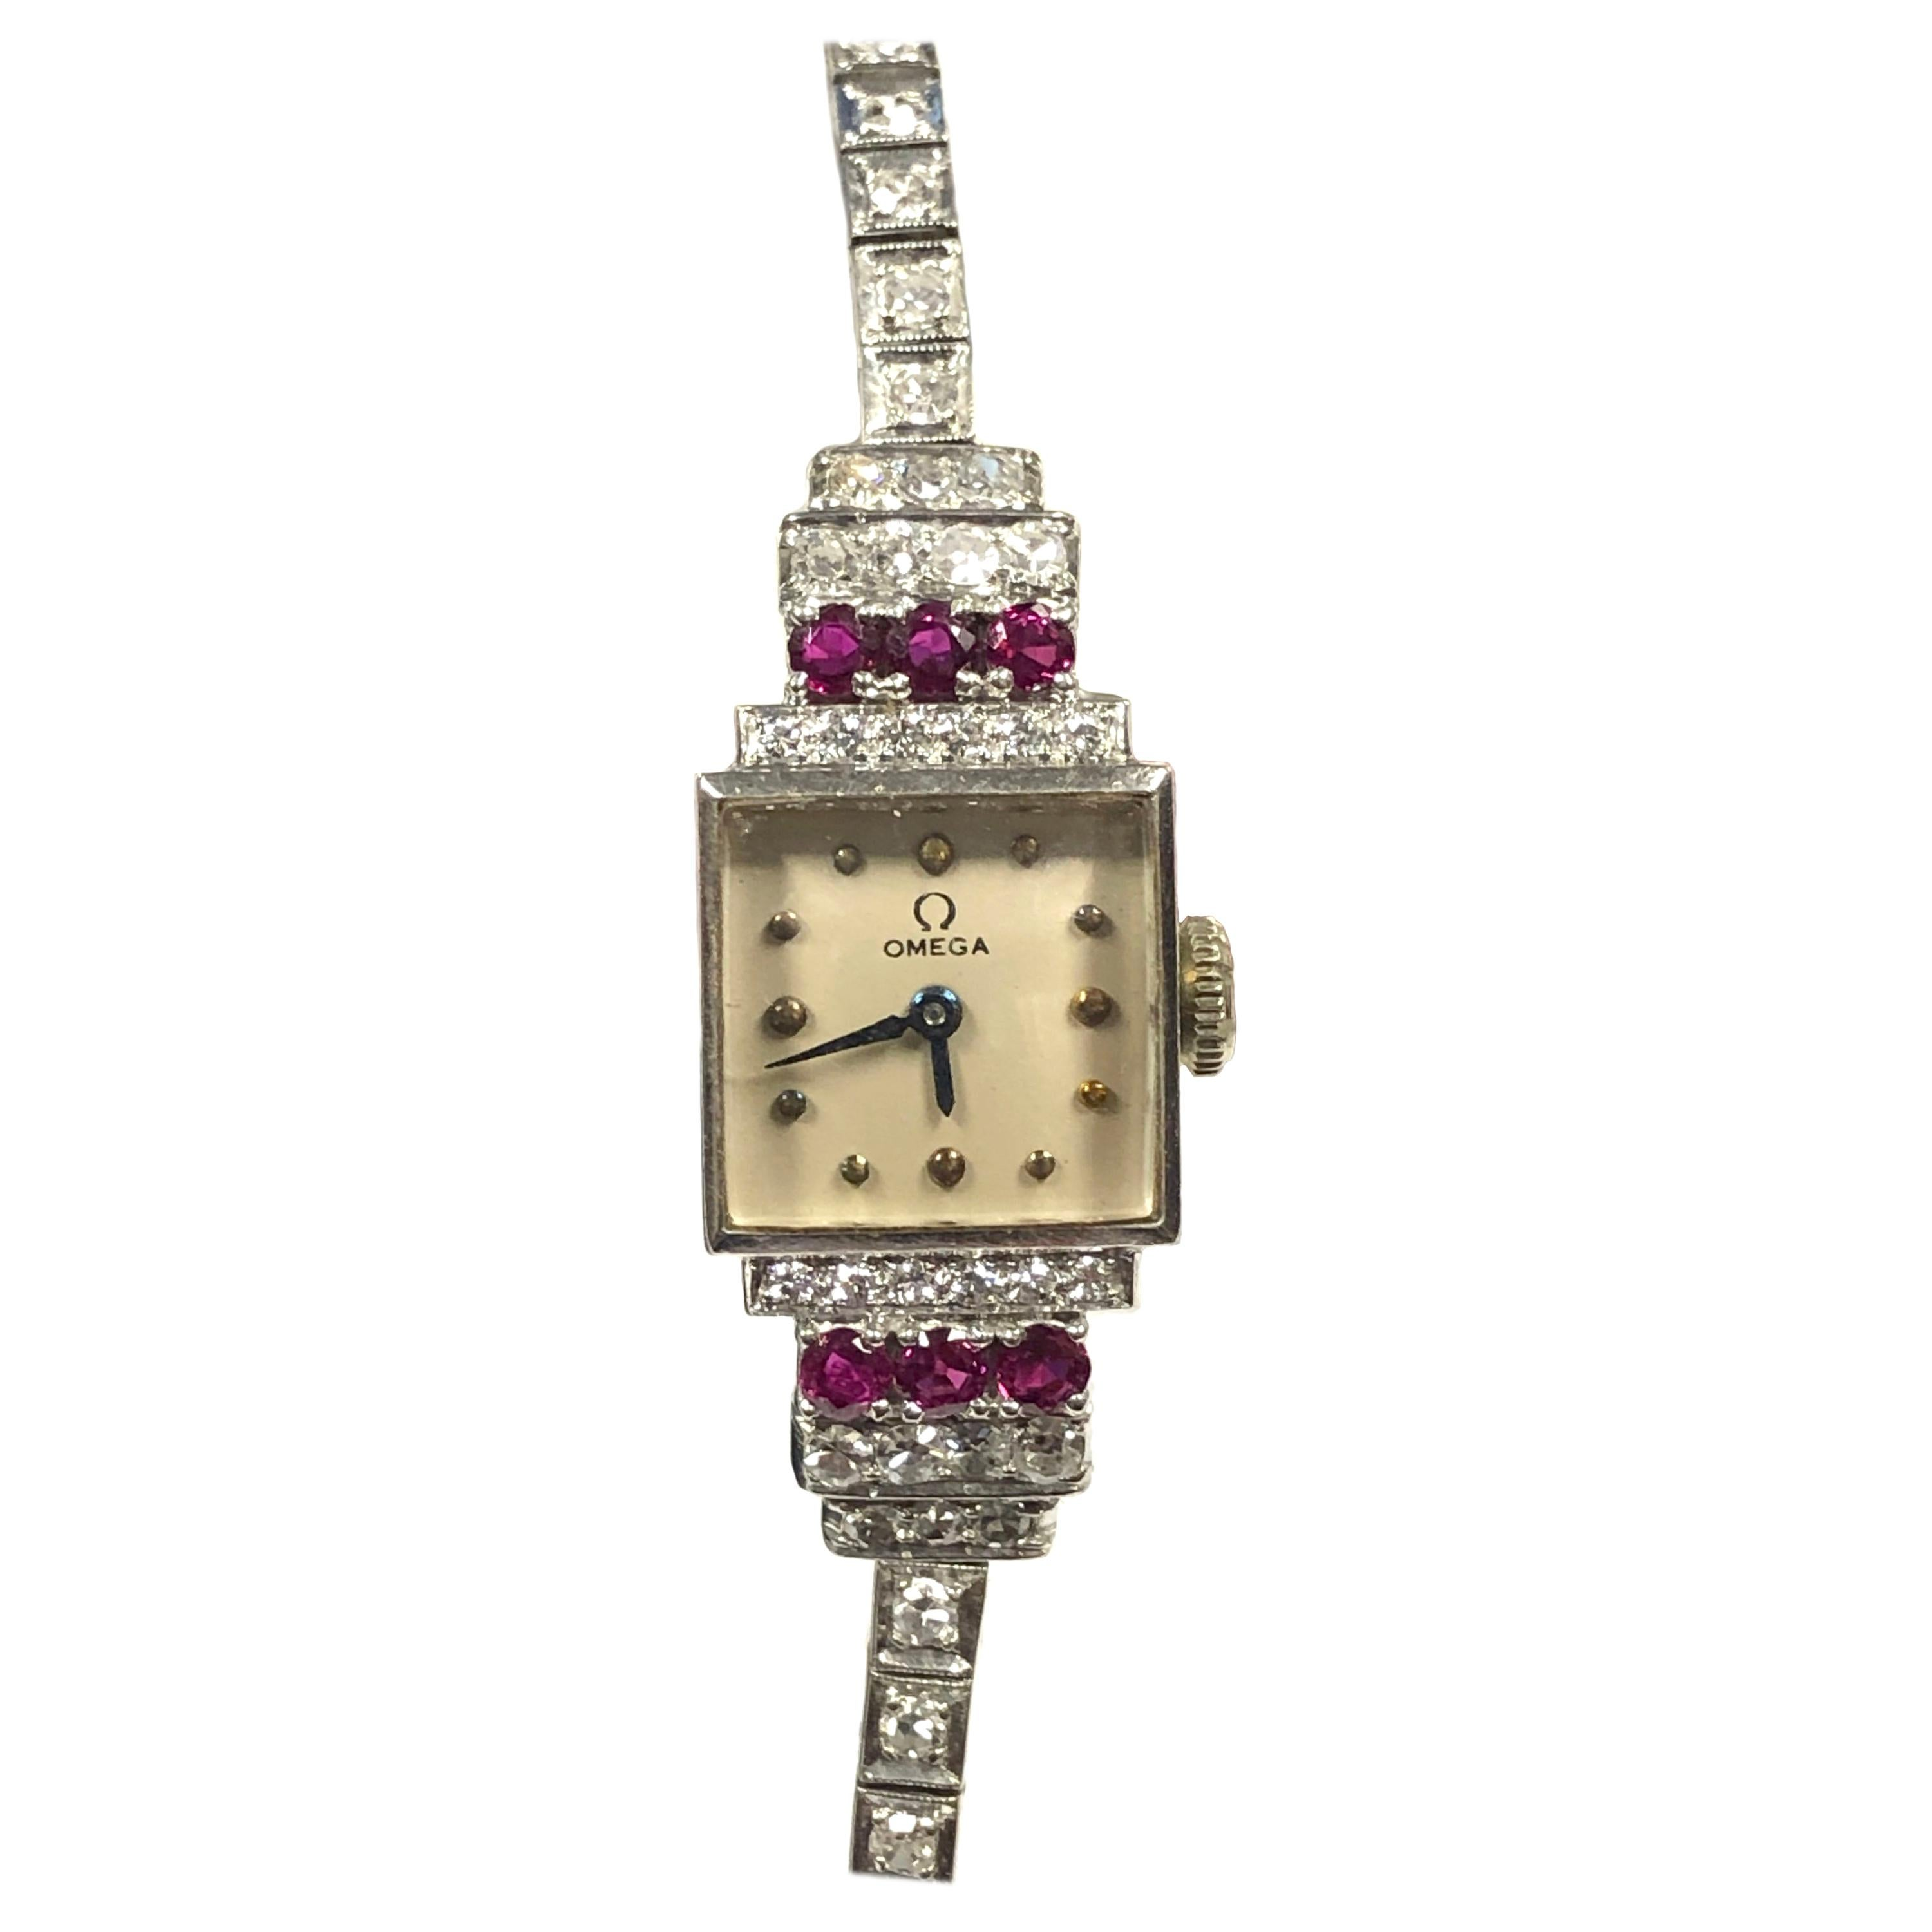 Omega Vintage Platinum Diamonds and Rubies Ladies Mechanical Wrist Watch